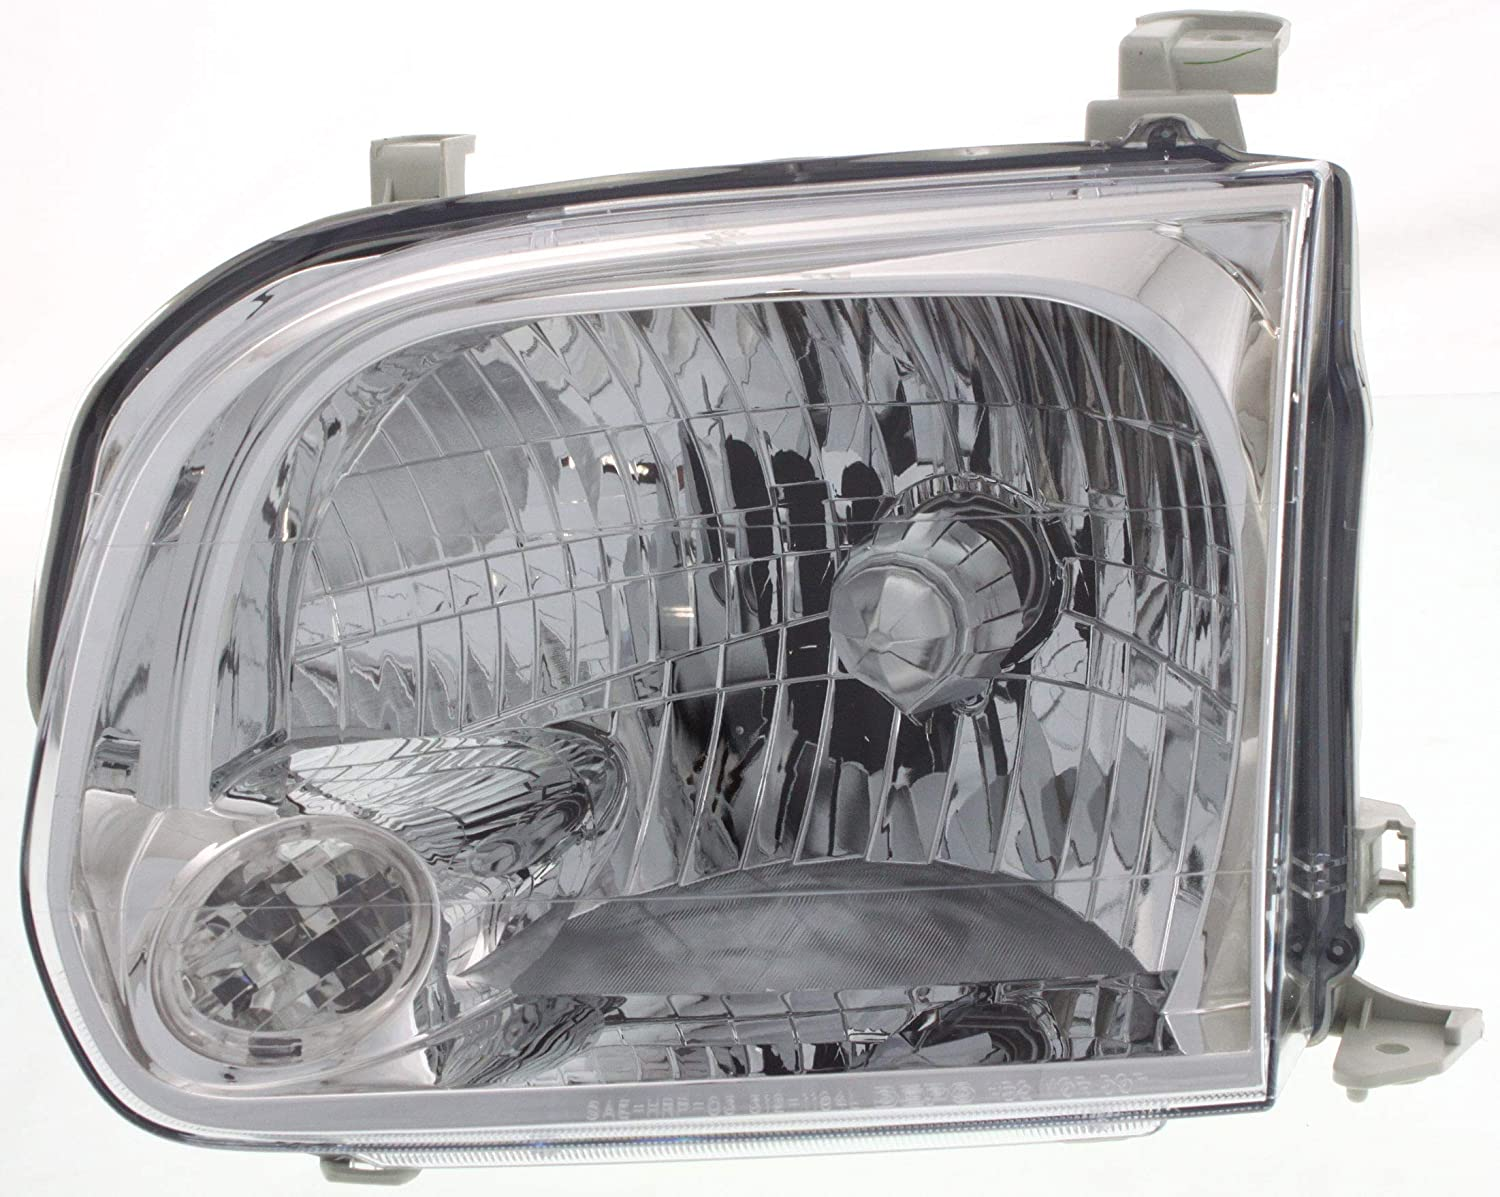 Headlight for TOYOTA SEQUOIA 2005-2007 LH Assembly Halogen - CAPA